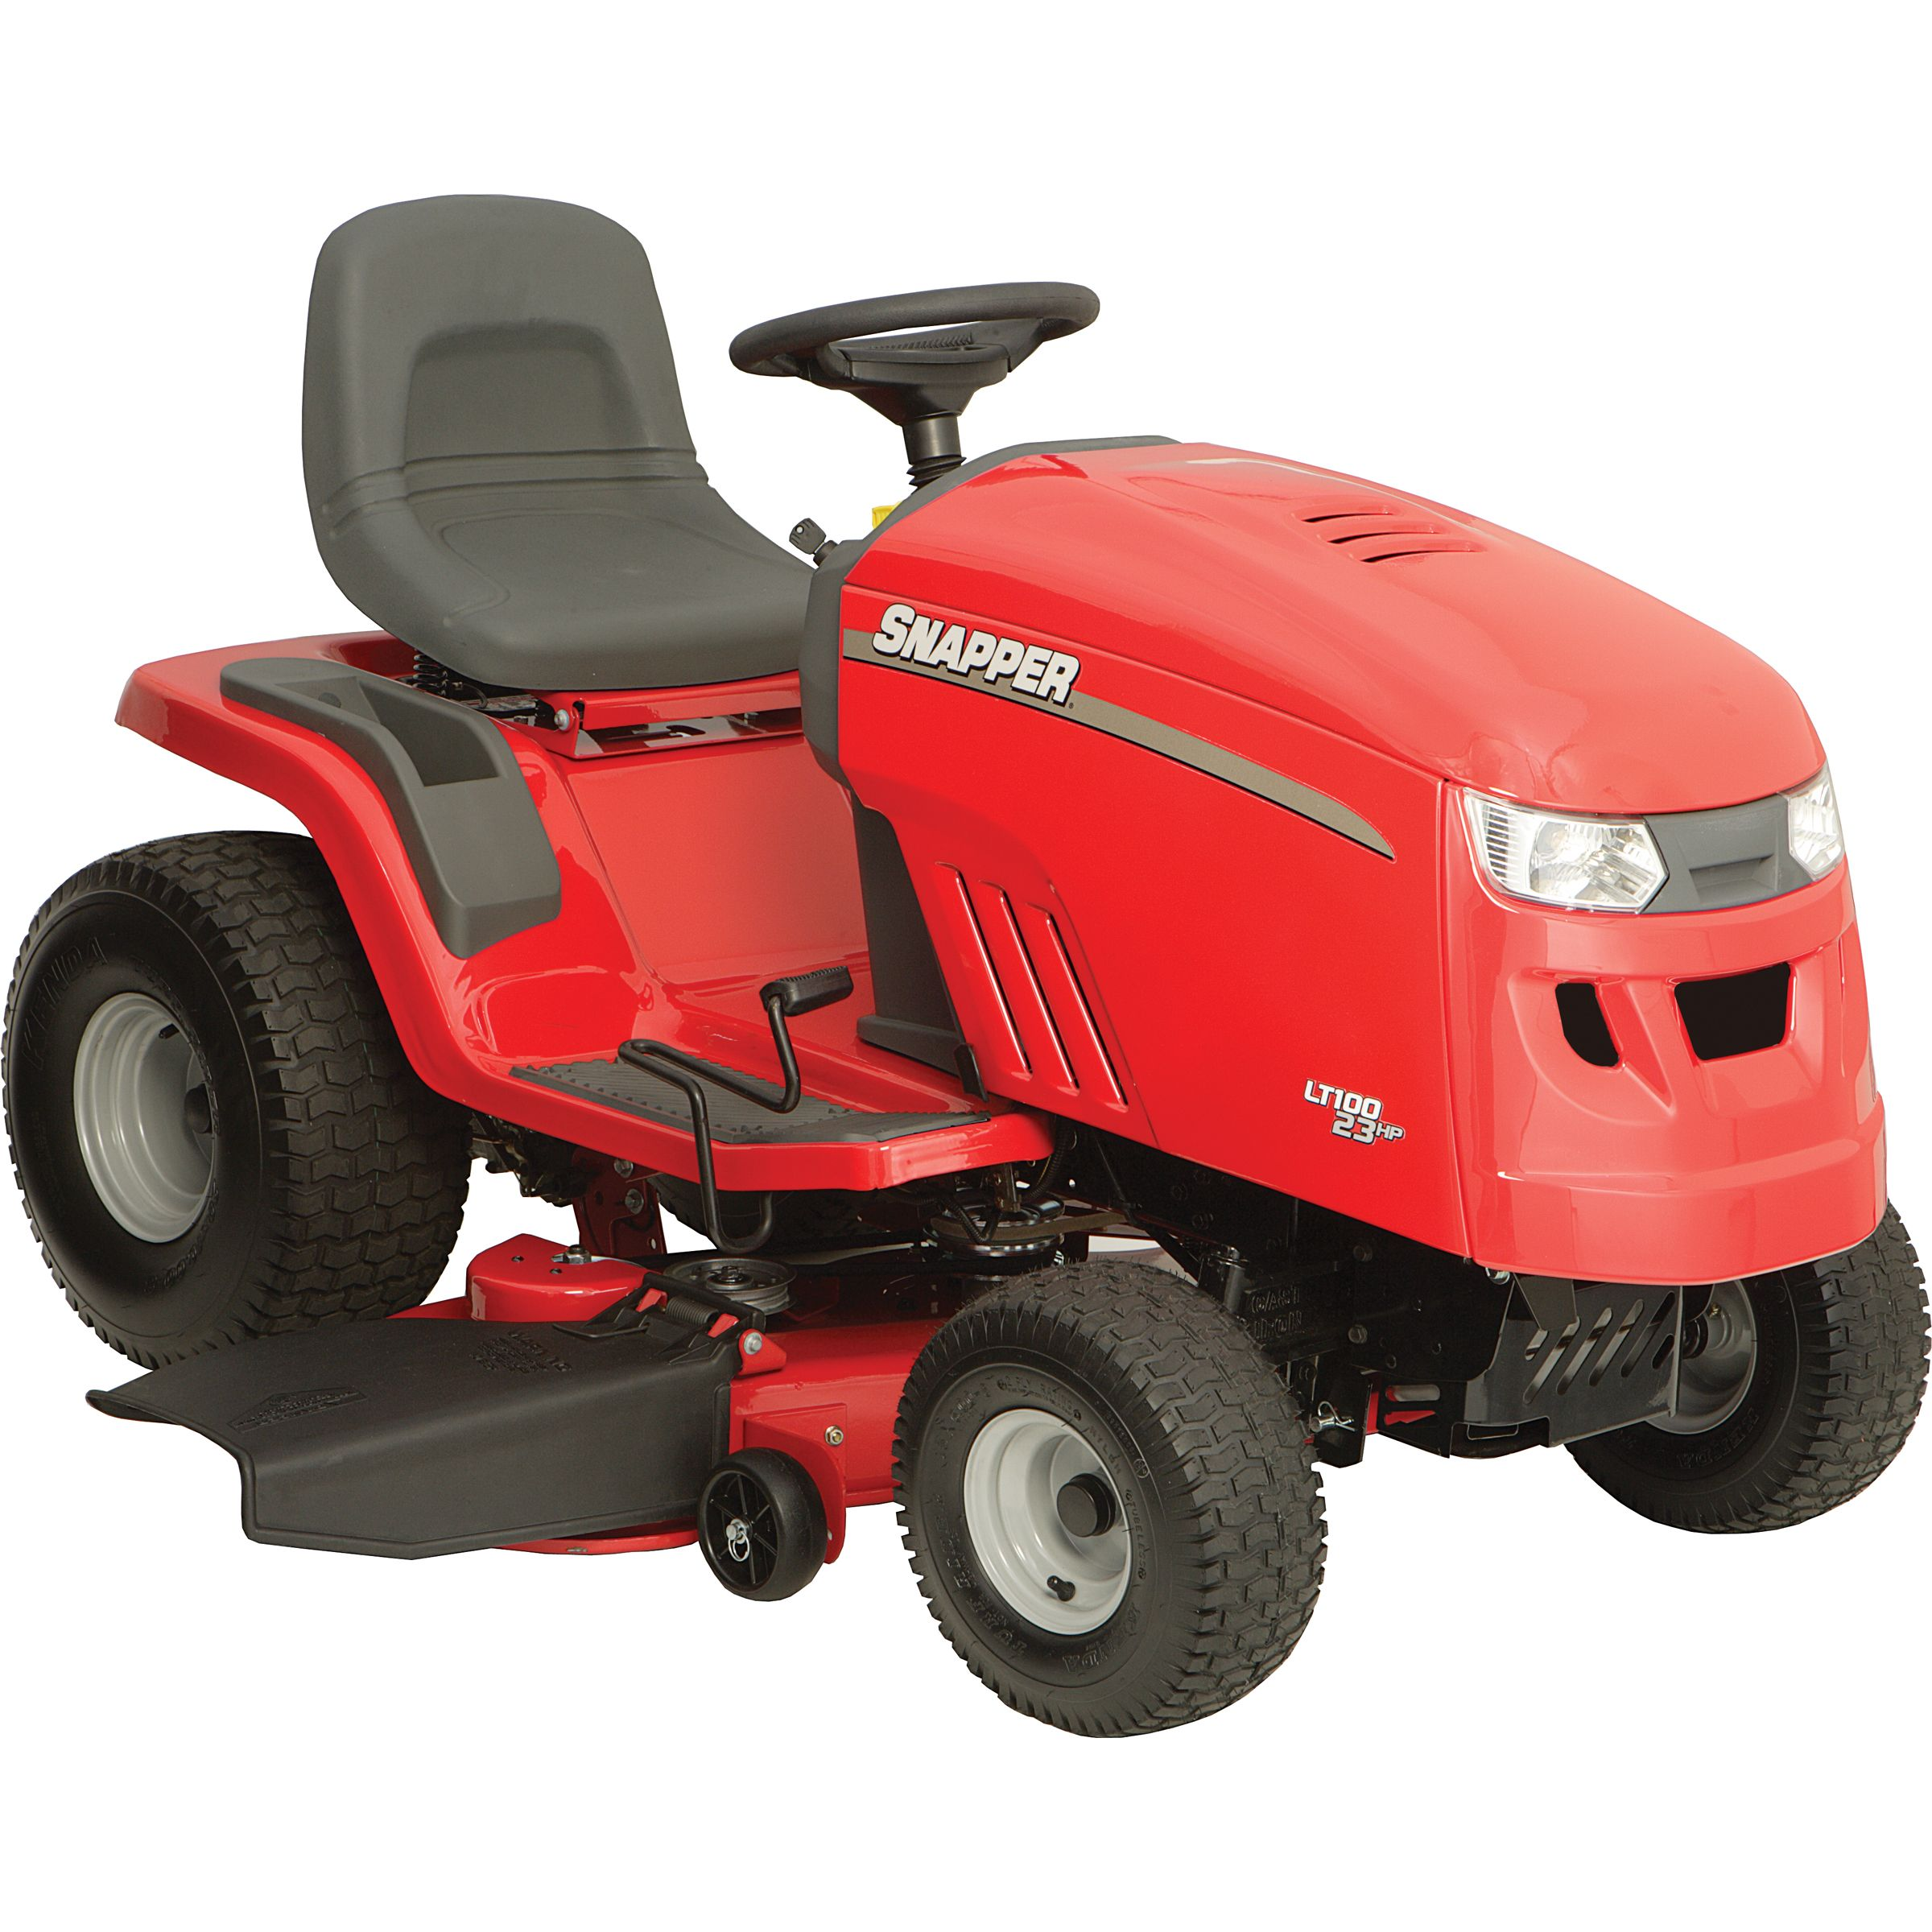 Snapper - 28629 23 Hp Pro Lawn Tractor Ca Model Sears Outlet